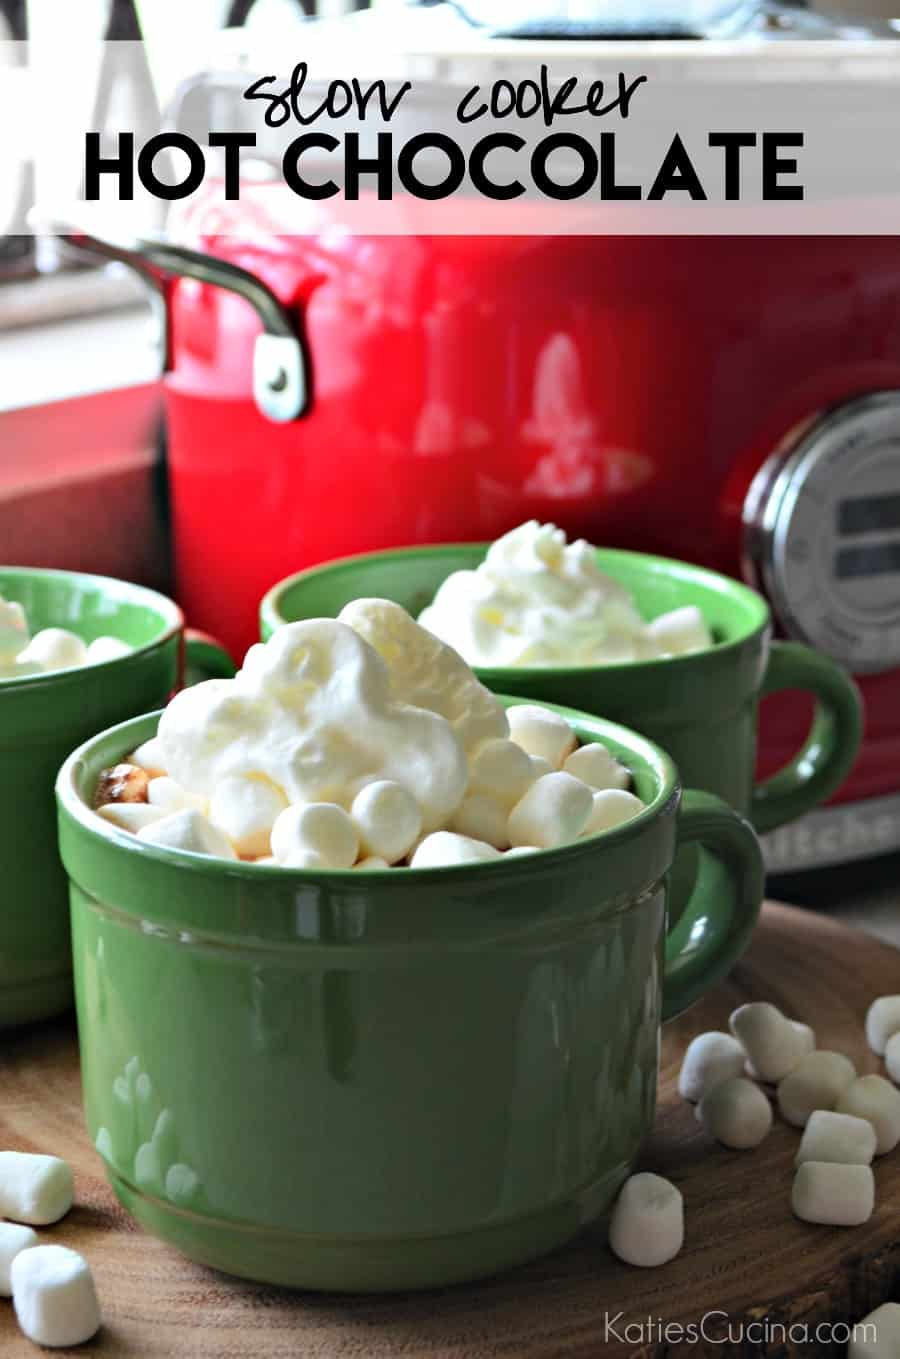 Red slow cooker in background with green mugs filled with whipped cream and text on image.